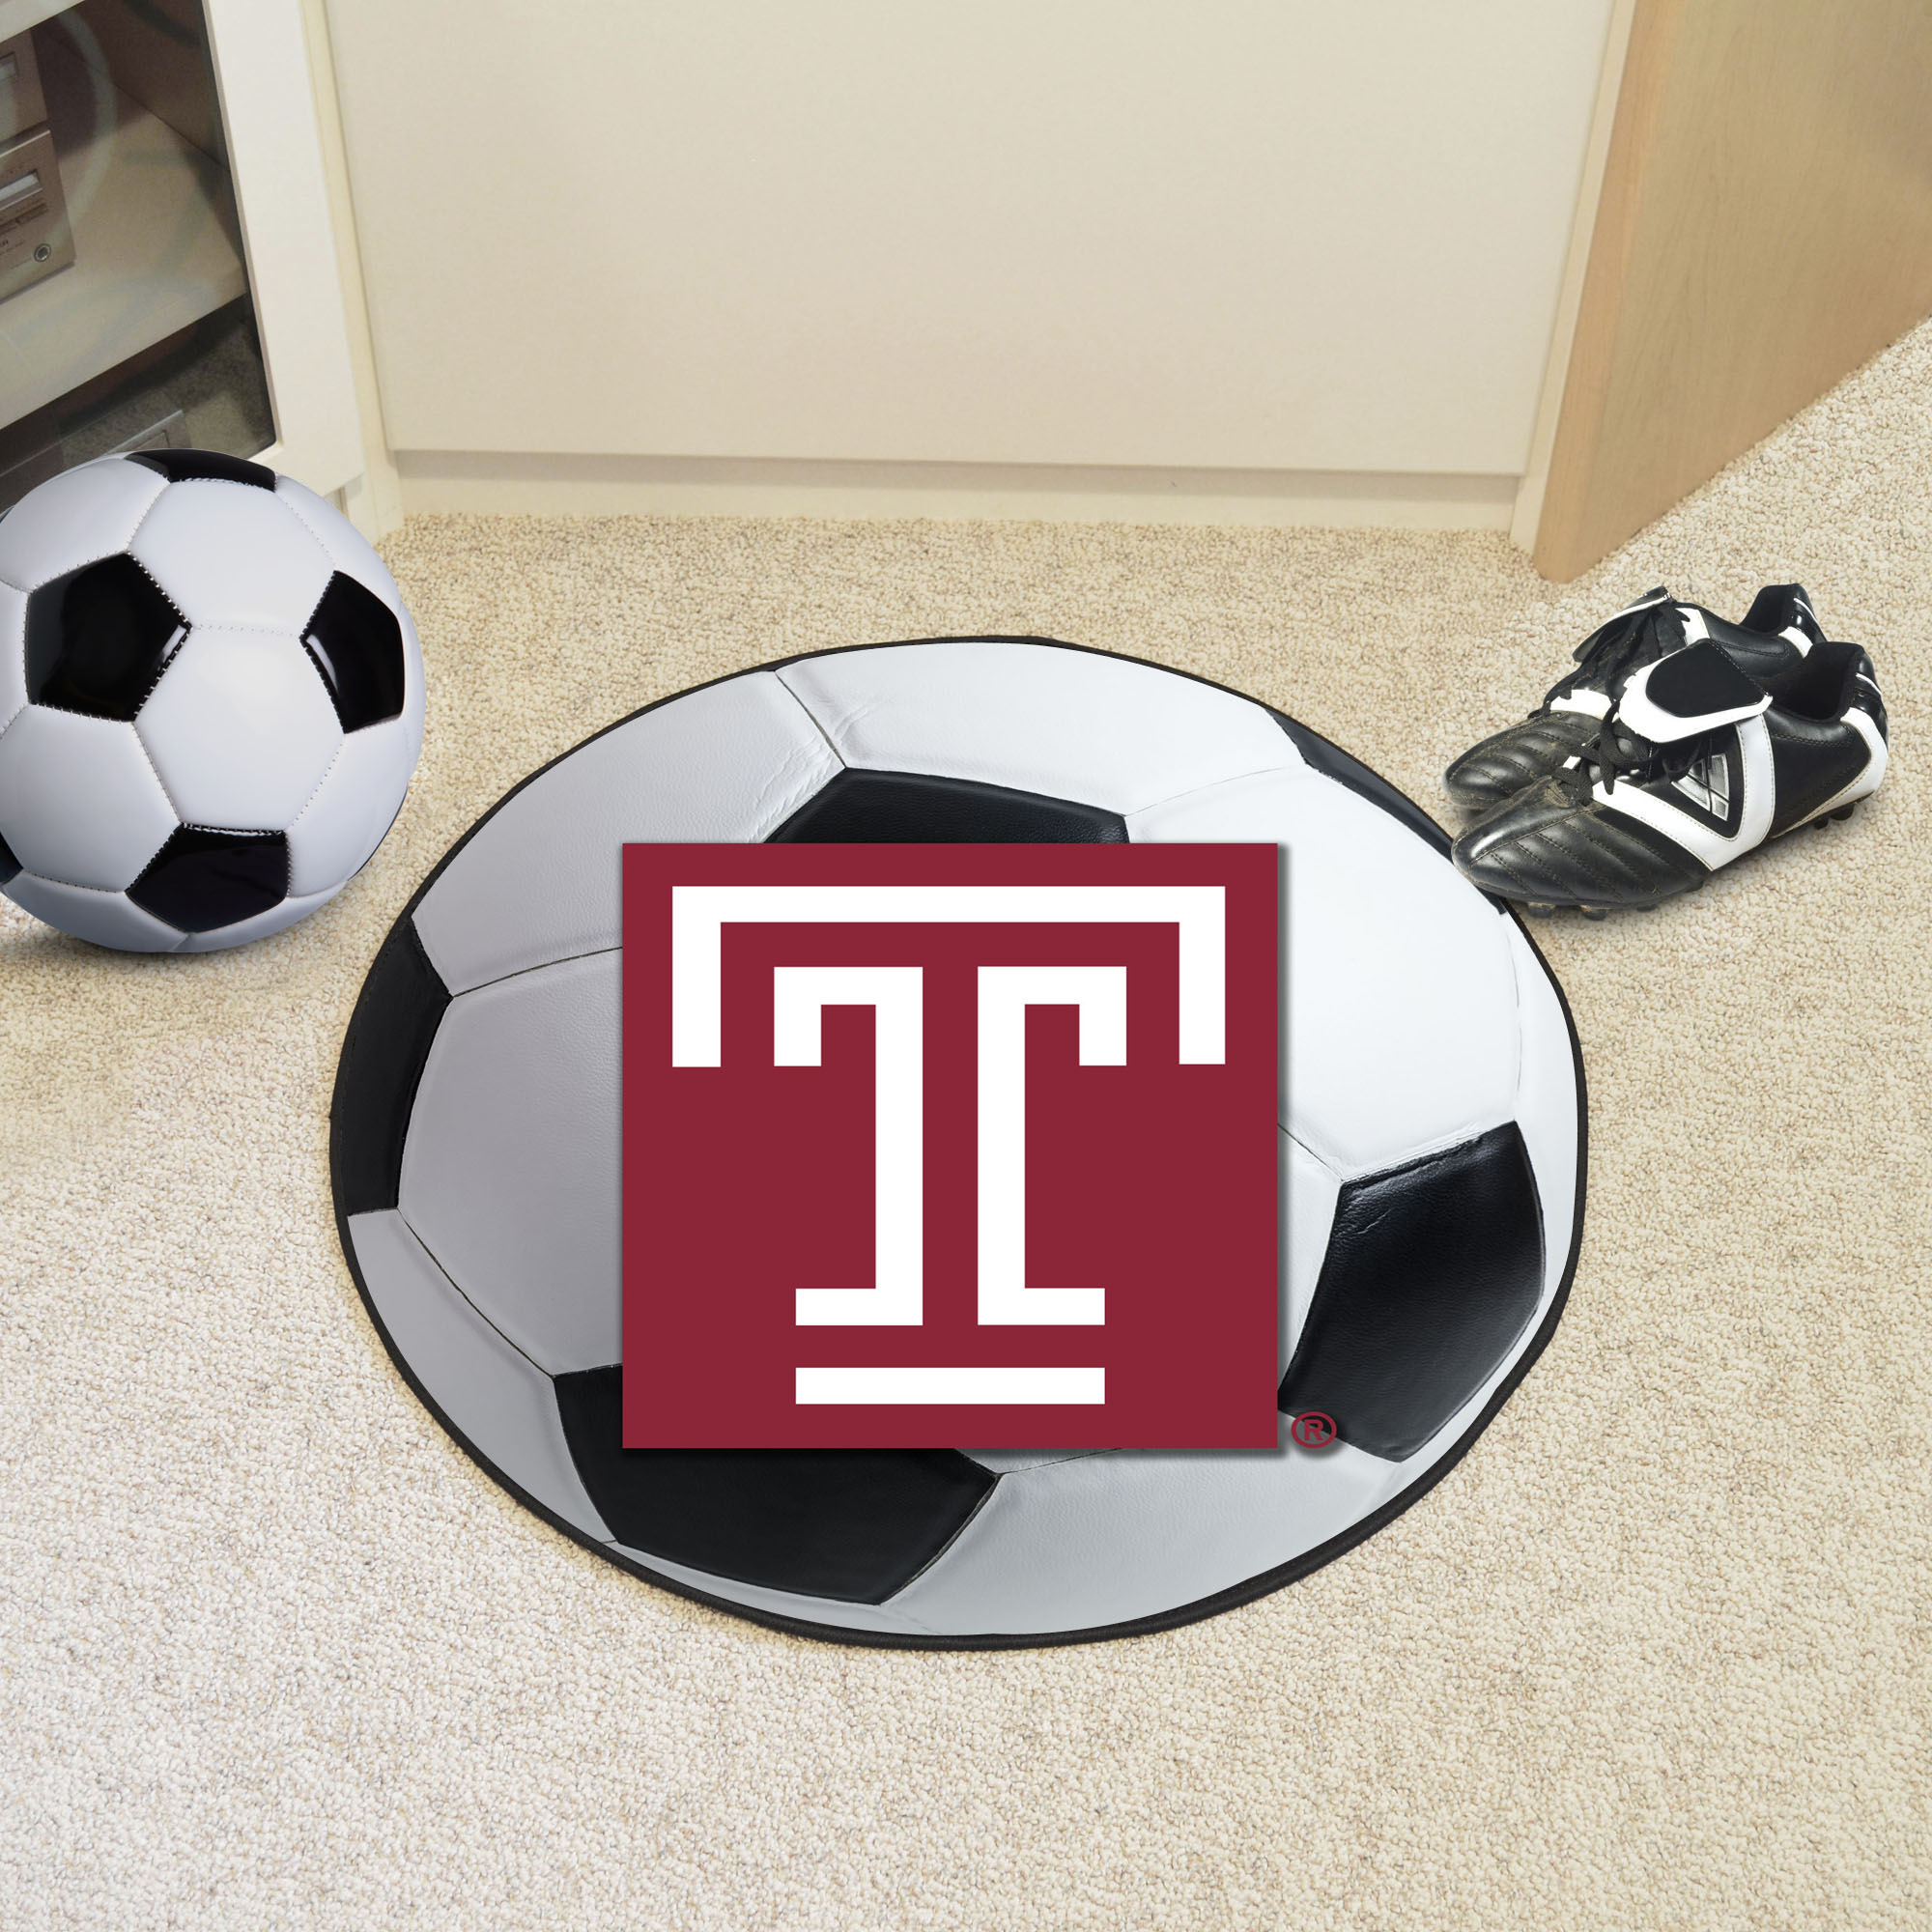 Temple University Ball Shaped Area rugs (Ball Shaped Area Rugs: Soccer Ball)